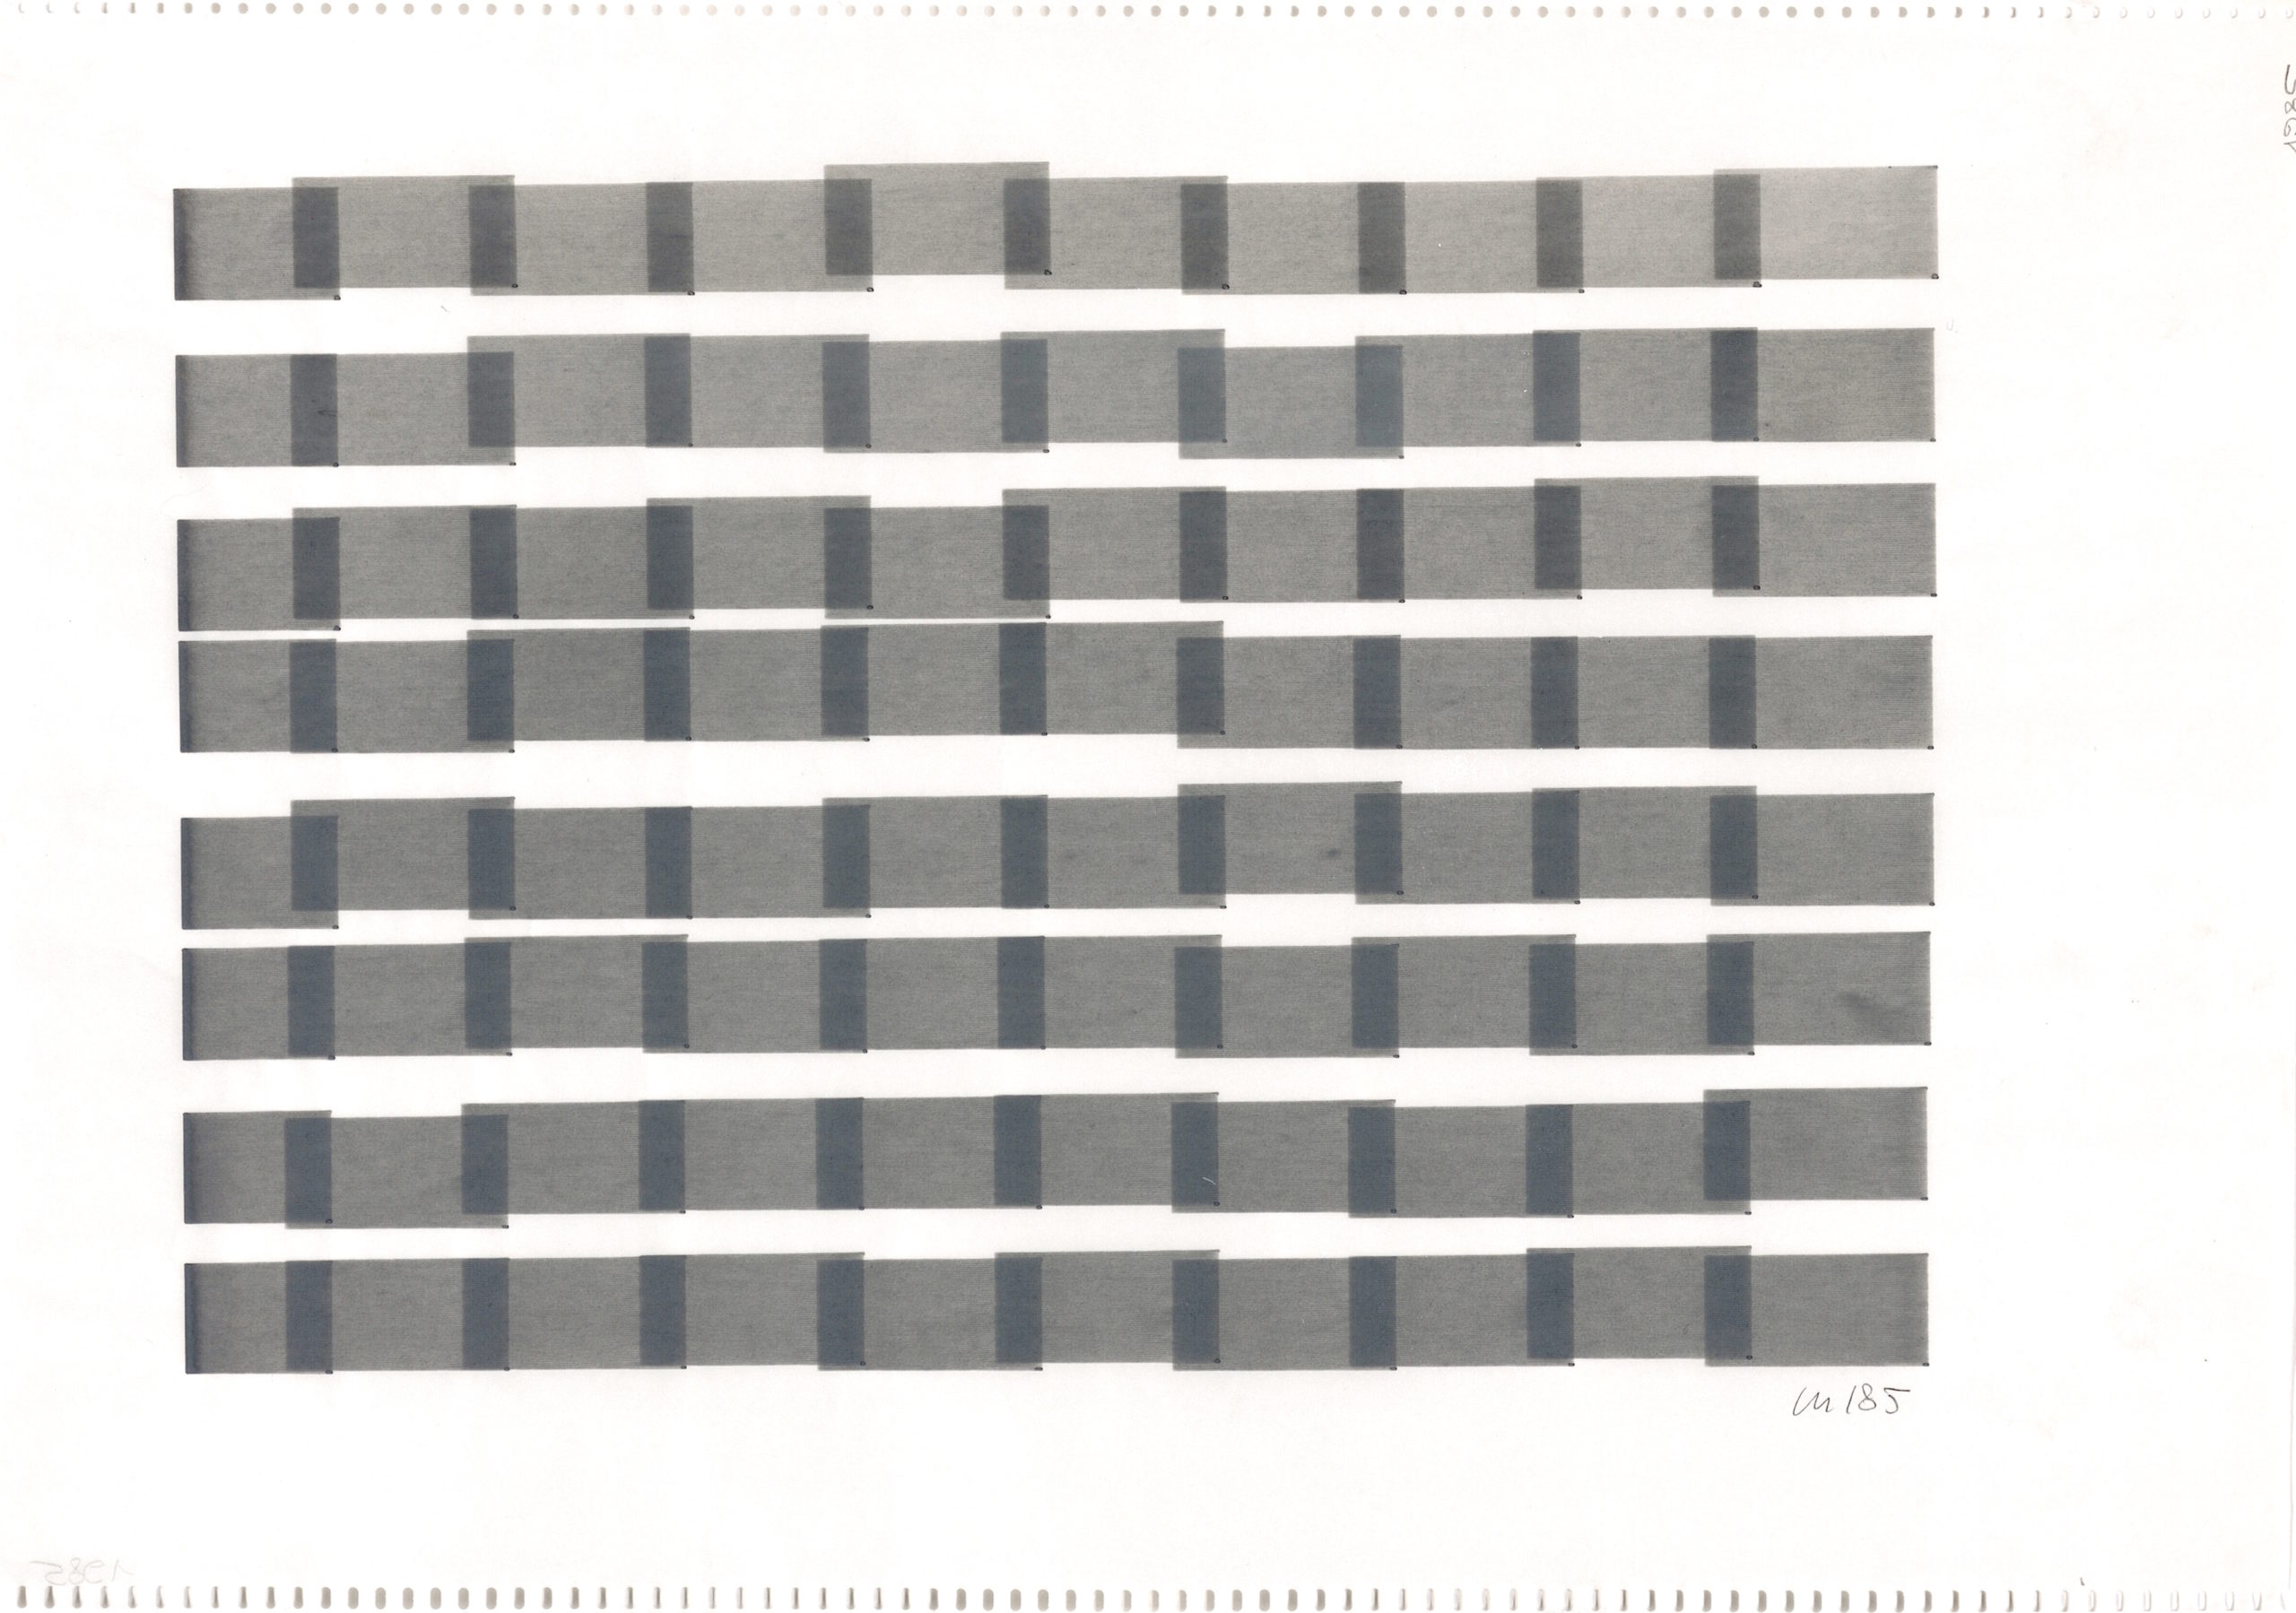 Vera Molnar, 8 Colonnes, plotter drawing, 23 x 32 cm, 1985